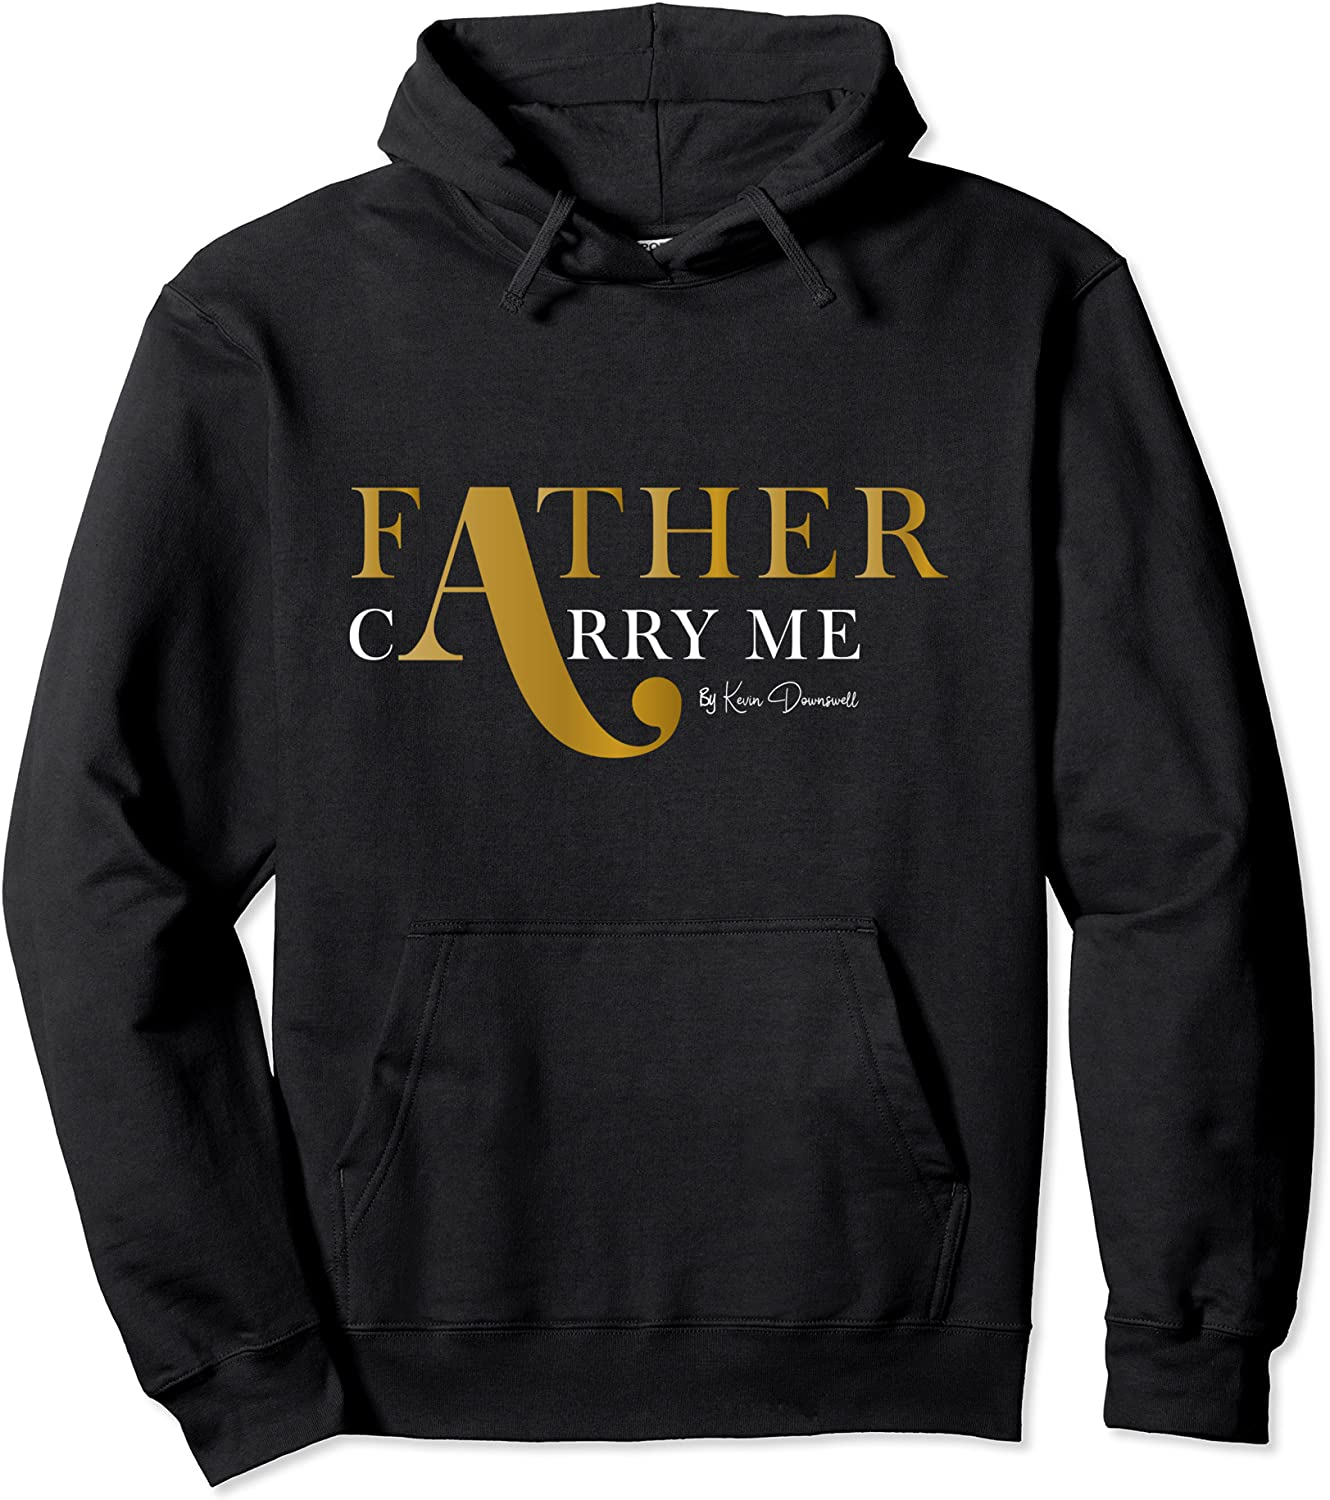 Father Max quality assurance 89% OFF Carry Me by Pullover Kevin Downswell Hoodie